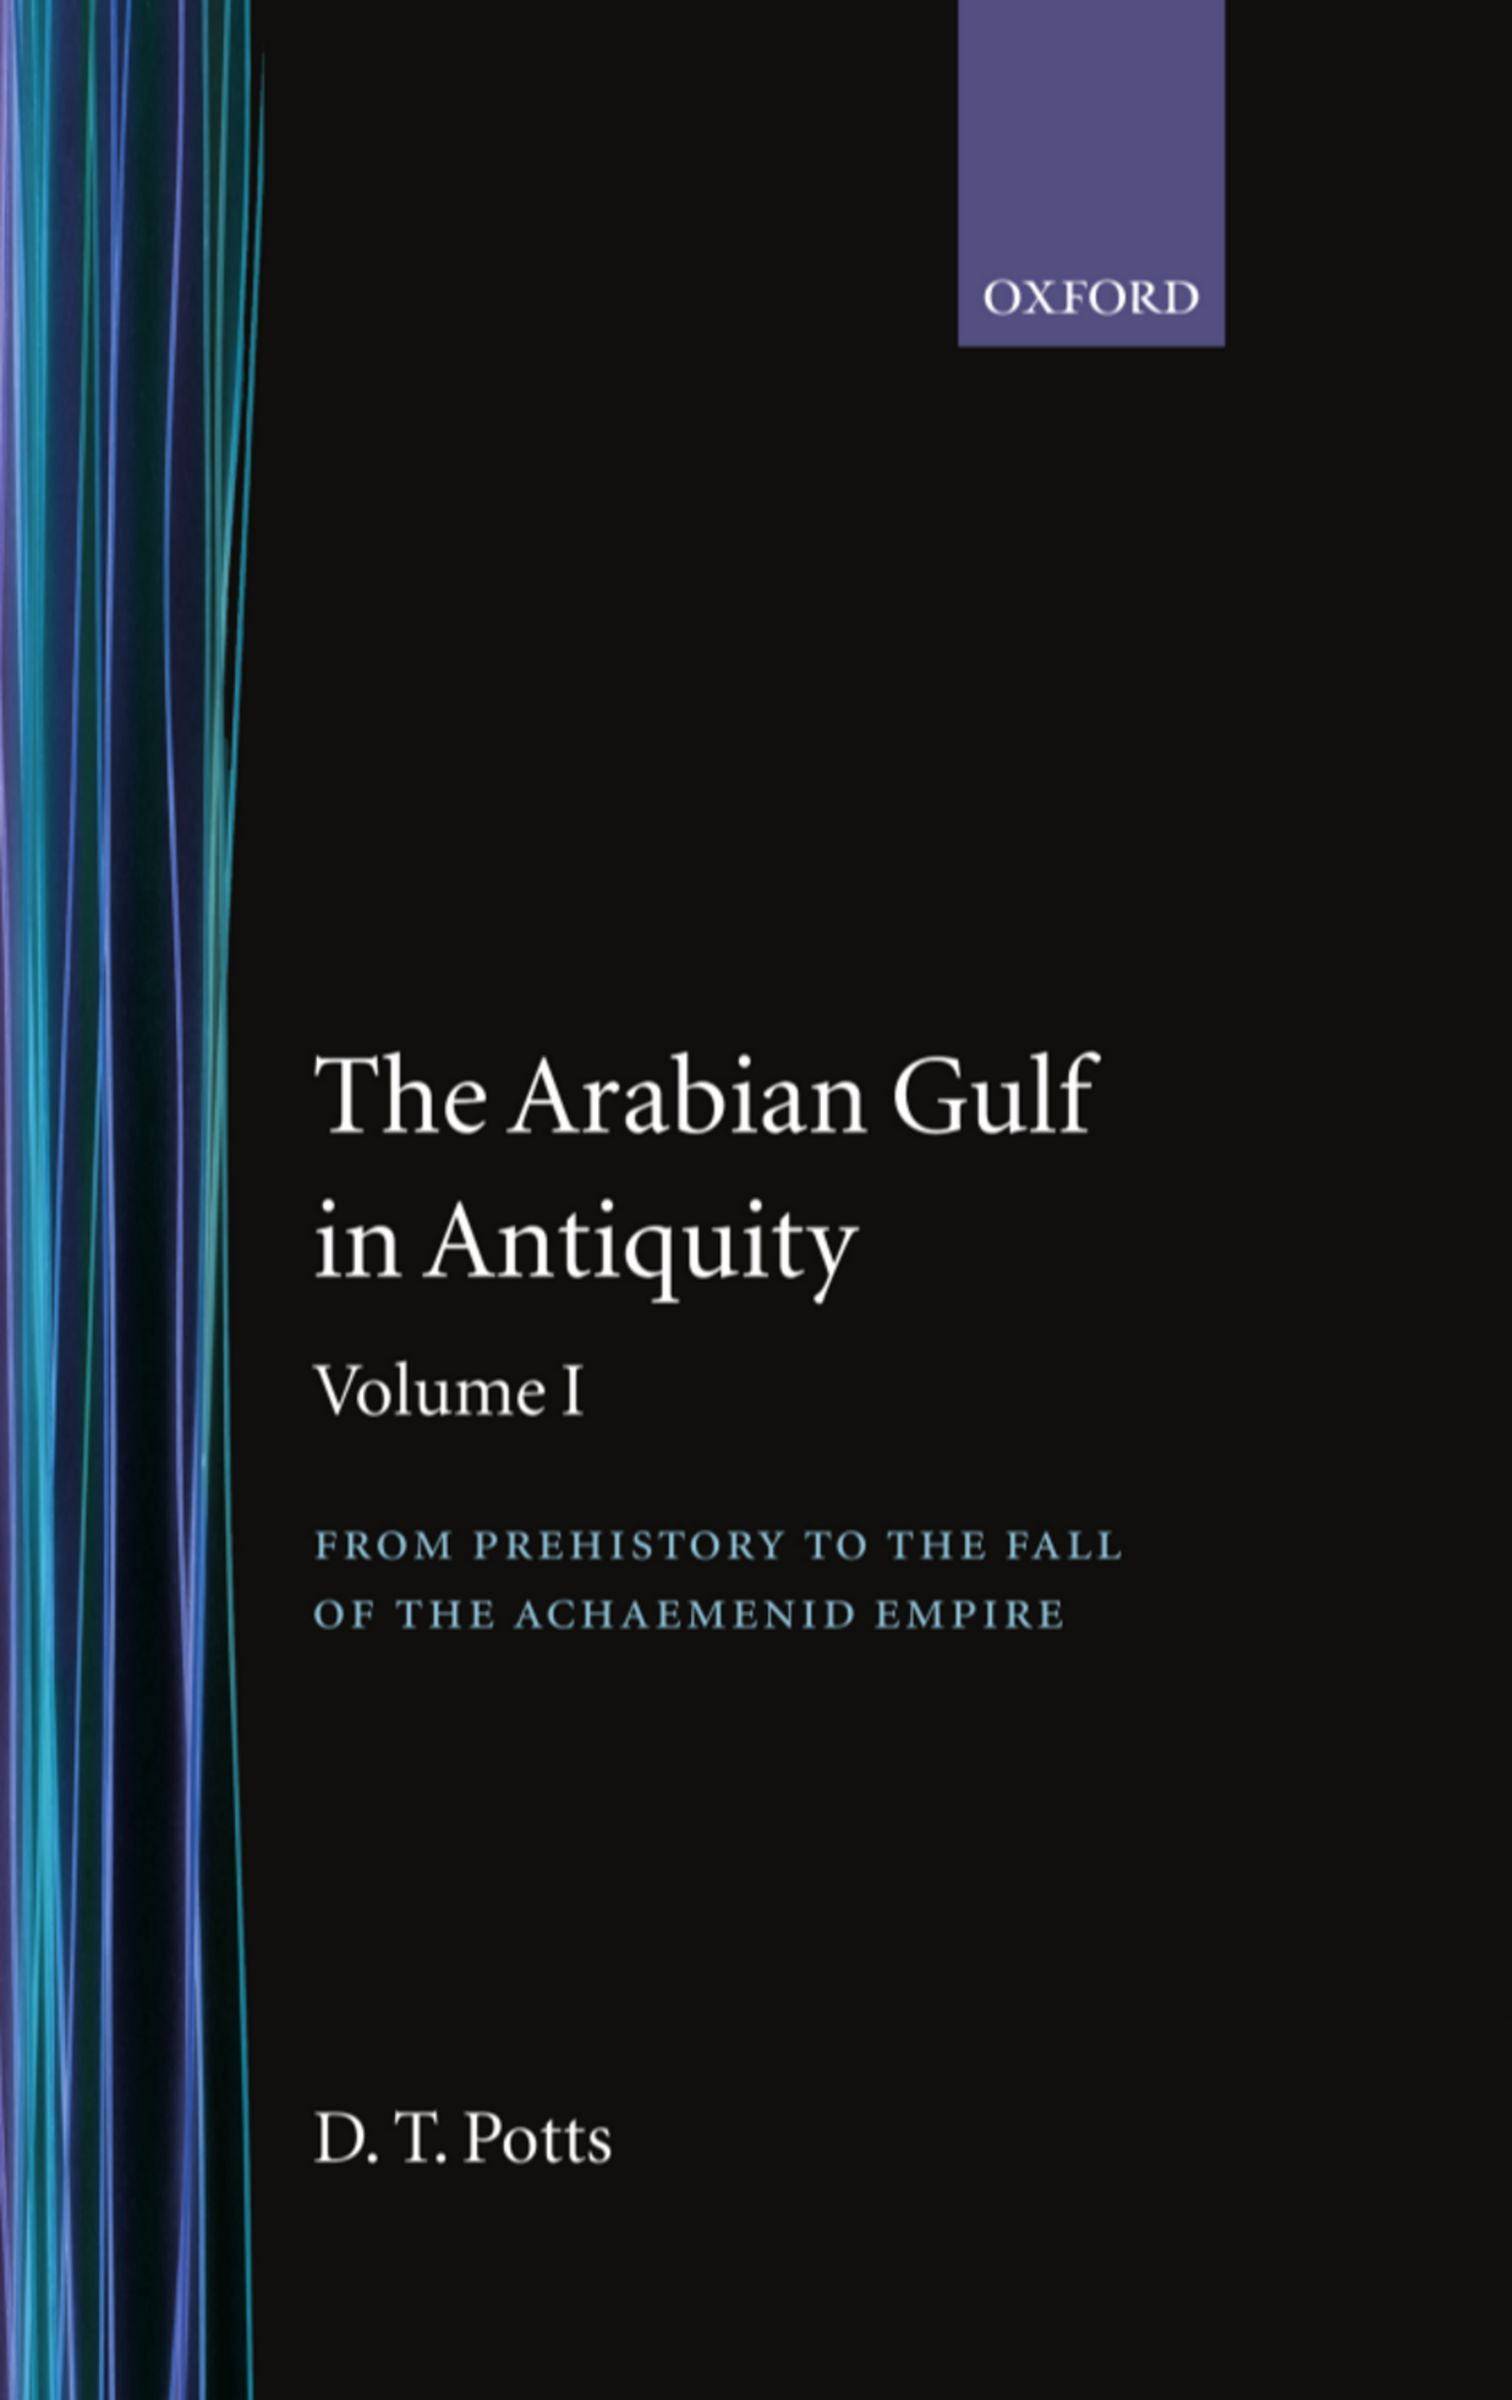 The Arabian Gulf in Antiquity: Volume I: From Prehistory to the Fall of the Achaemenid Empire ~ D.T. Potts ~ Oxford University Press ~ 1999